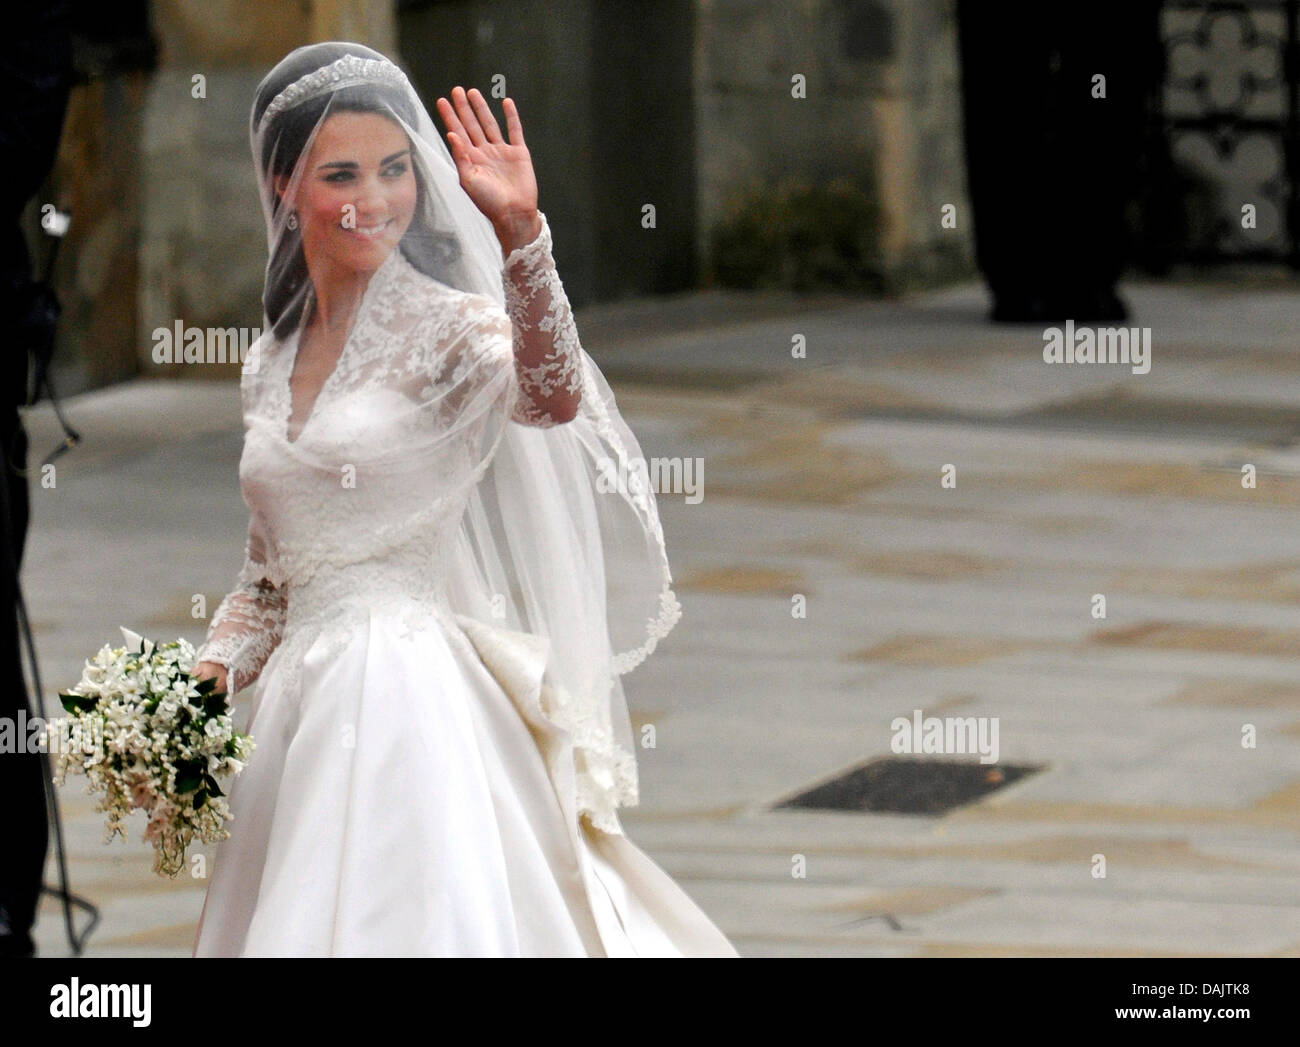 Kate Middleton Wedding Dress Stock Photos & Kate Middleton Wedding ...